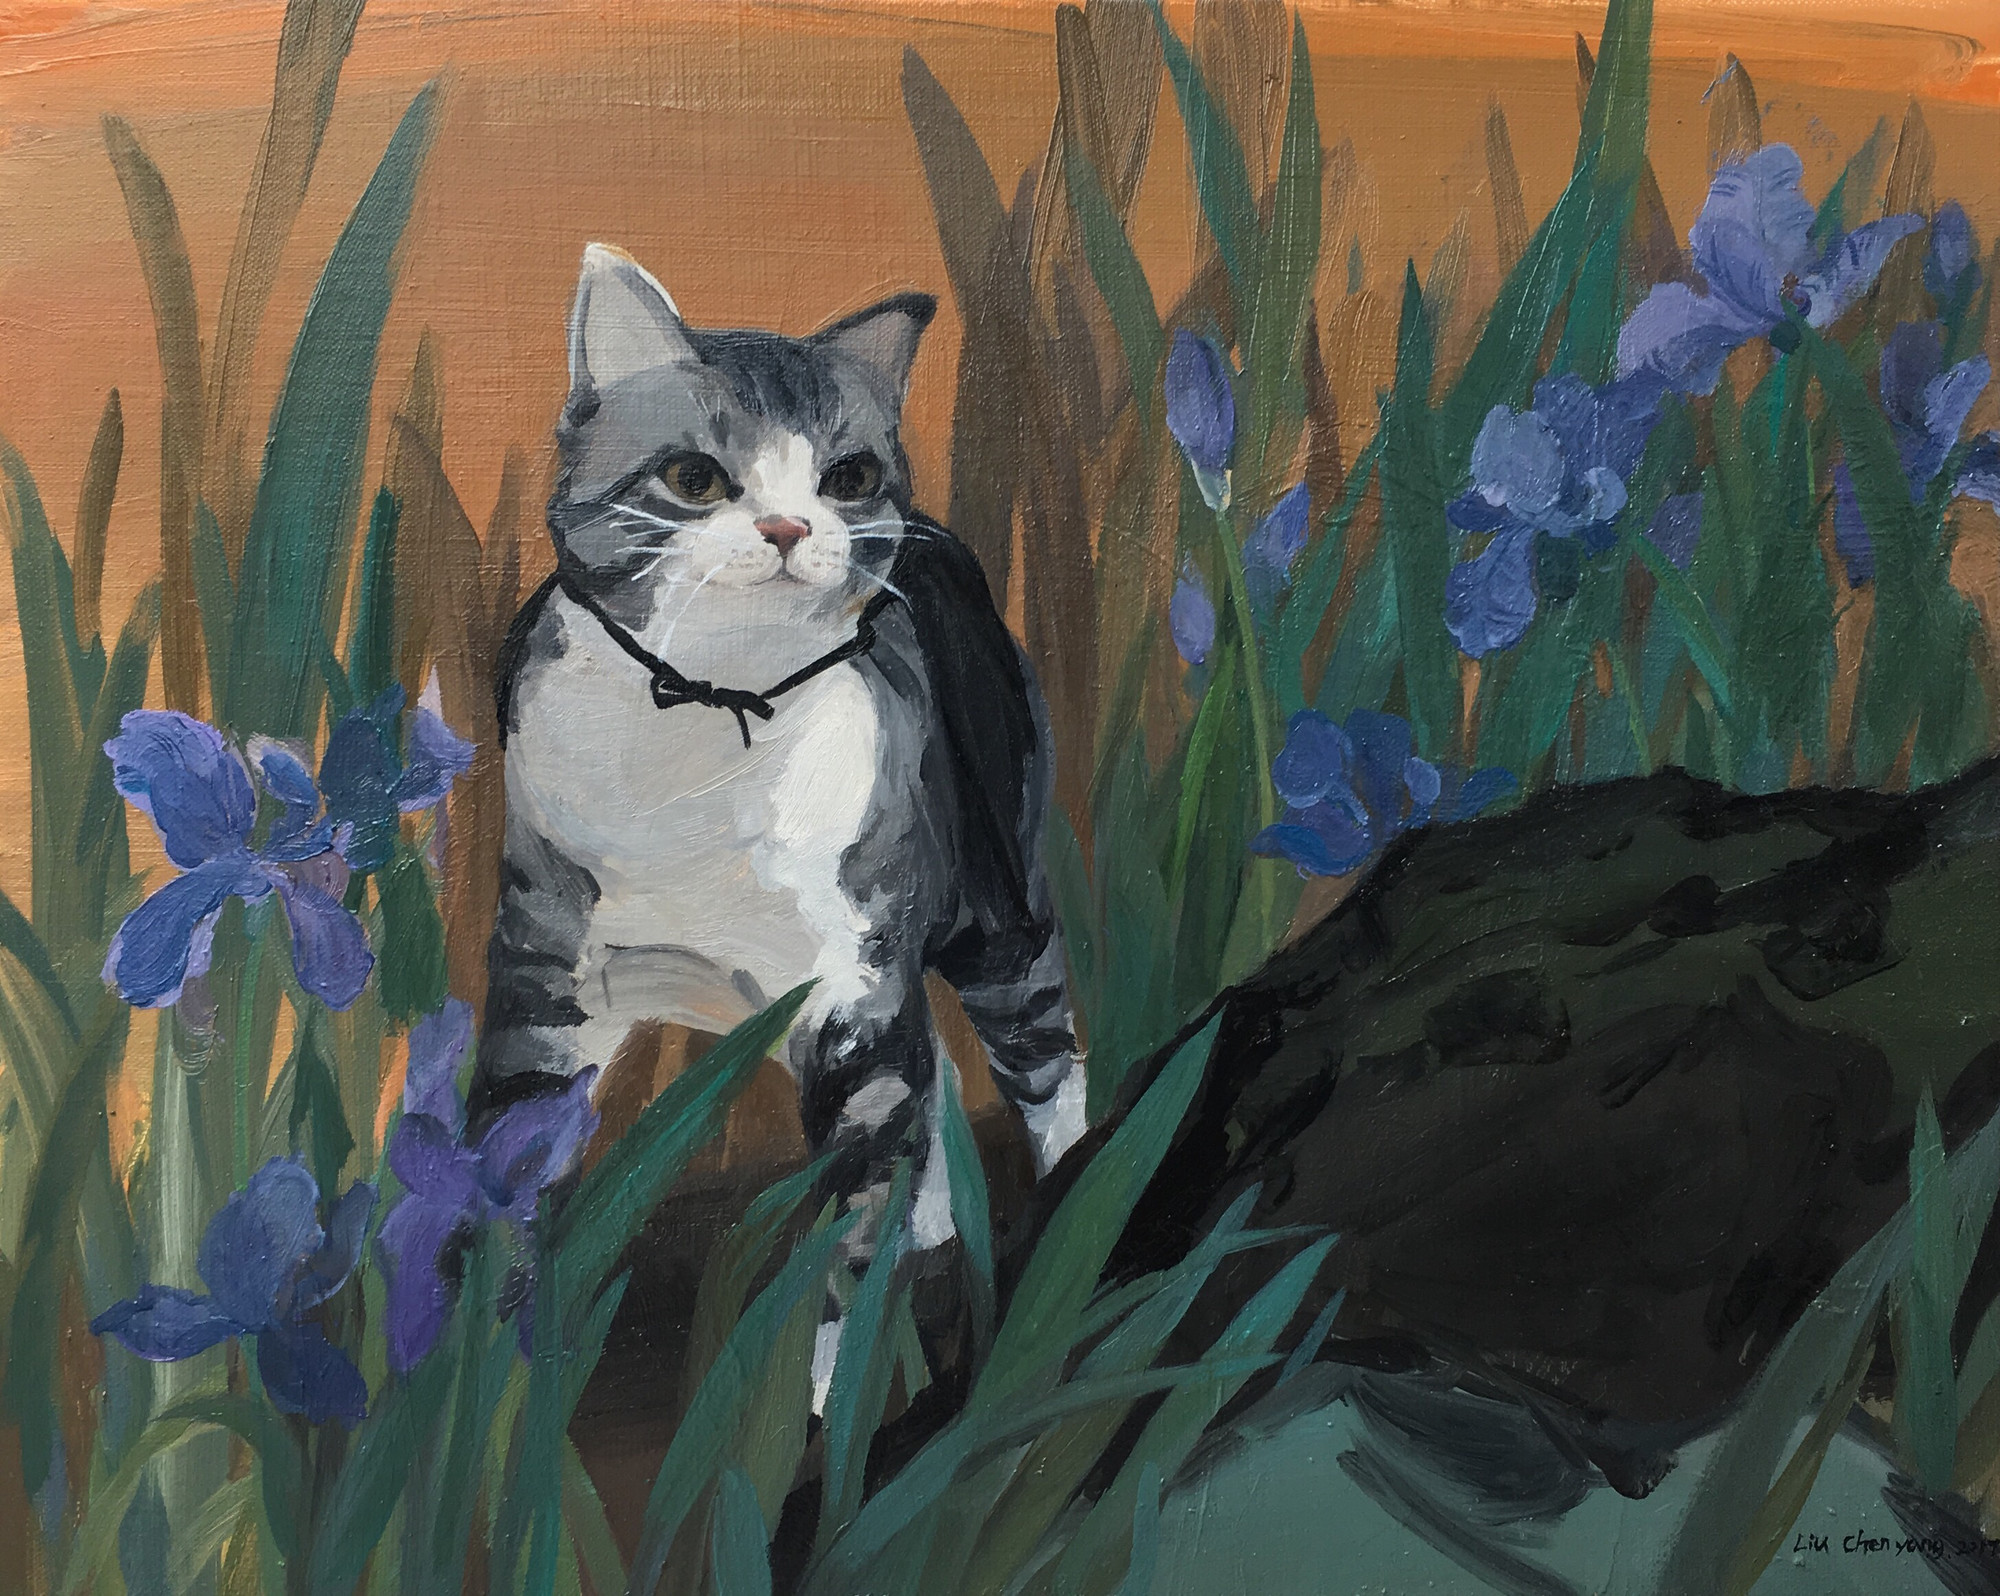 Chinese Artist Liu Chenyang's WorkCat No.4 Oil Painting Wall Art Canvas Nordic Home Decor Picture Kitchen Living Room Bedroom